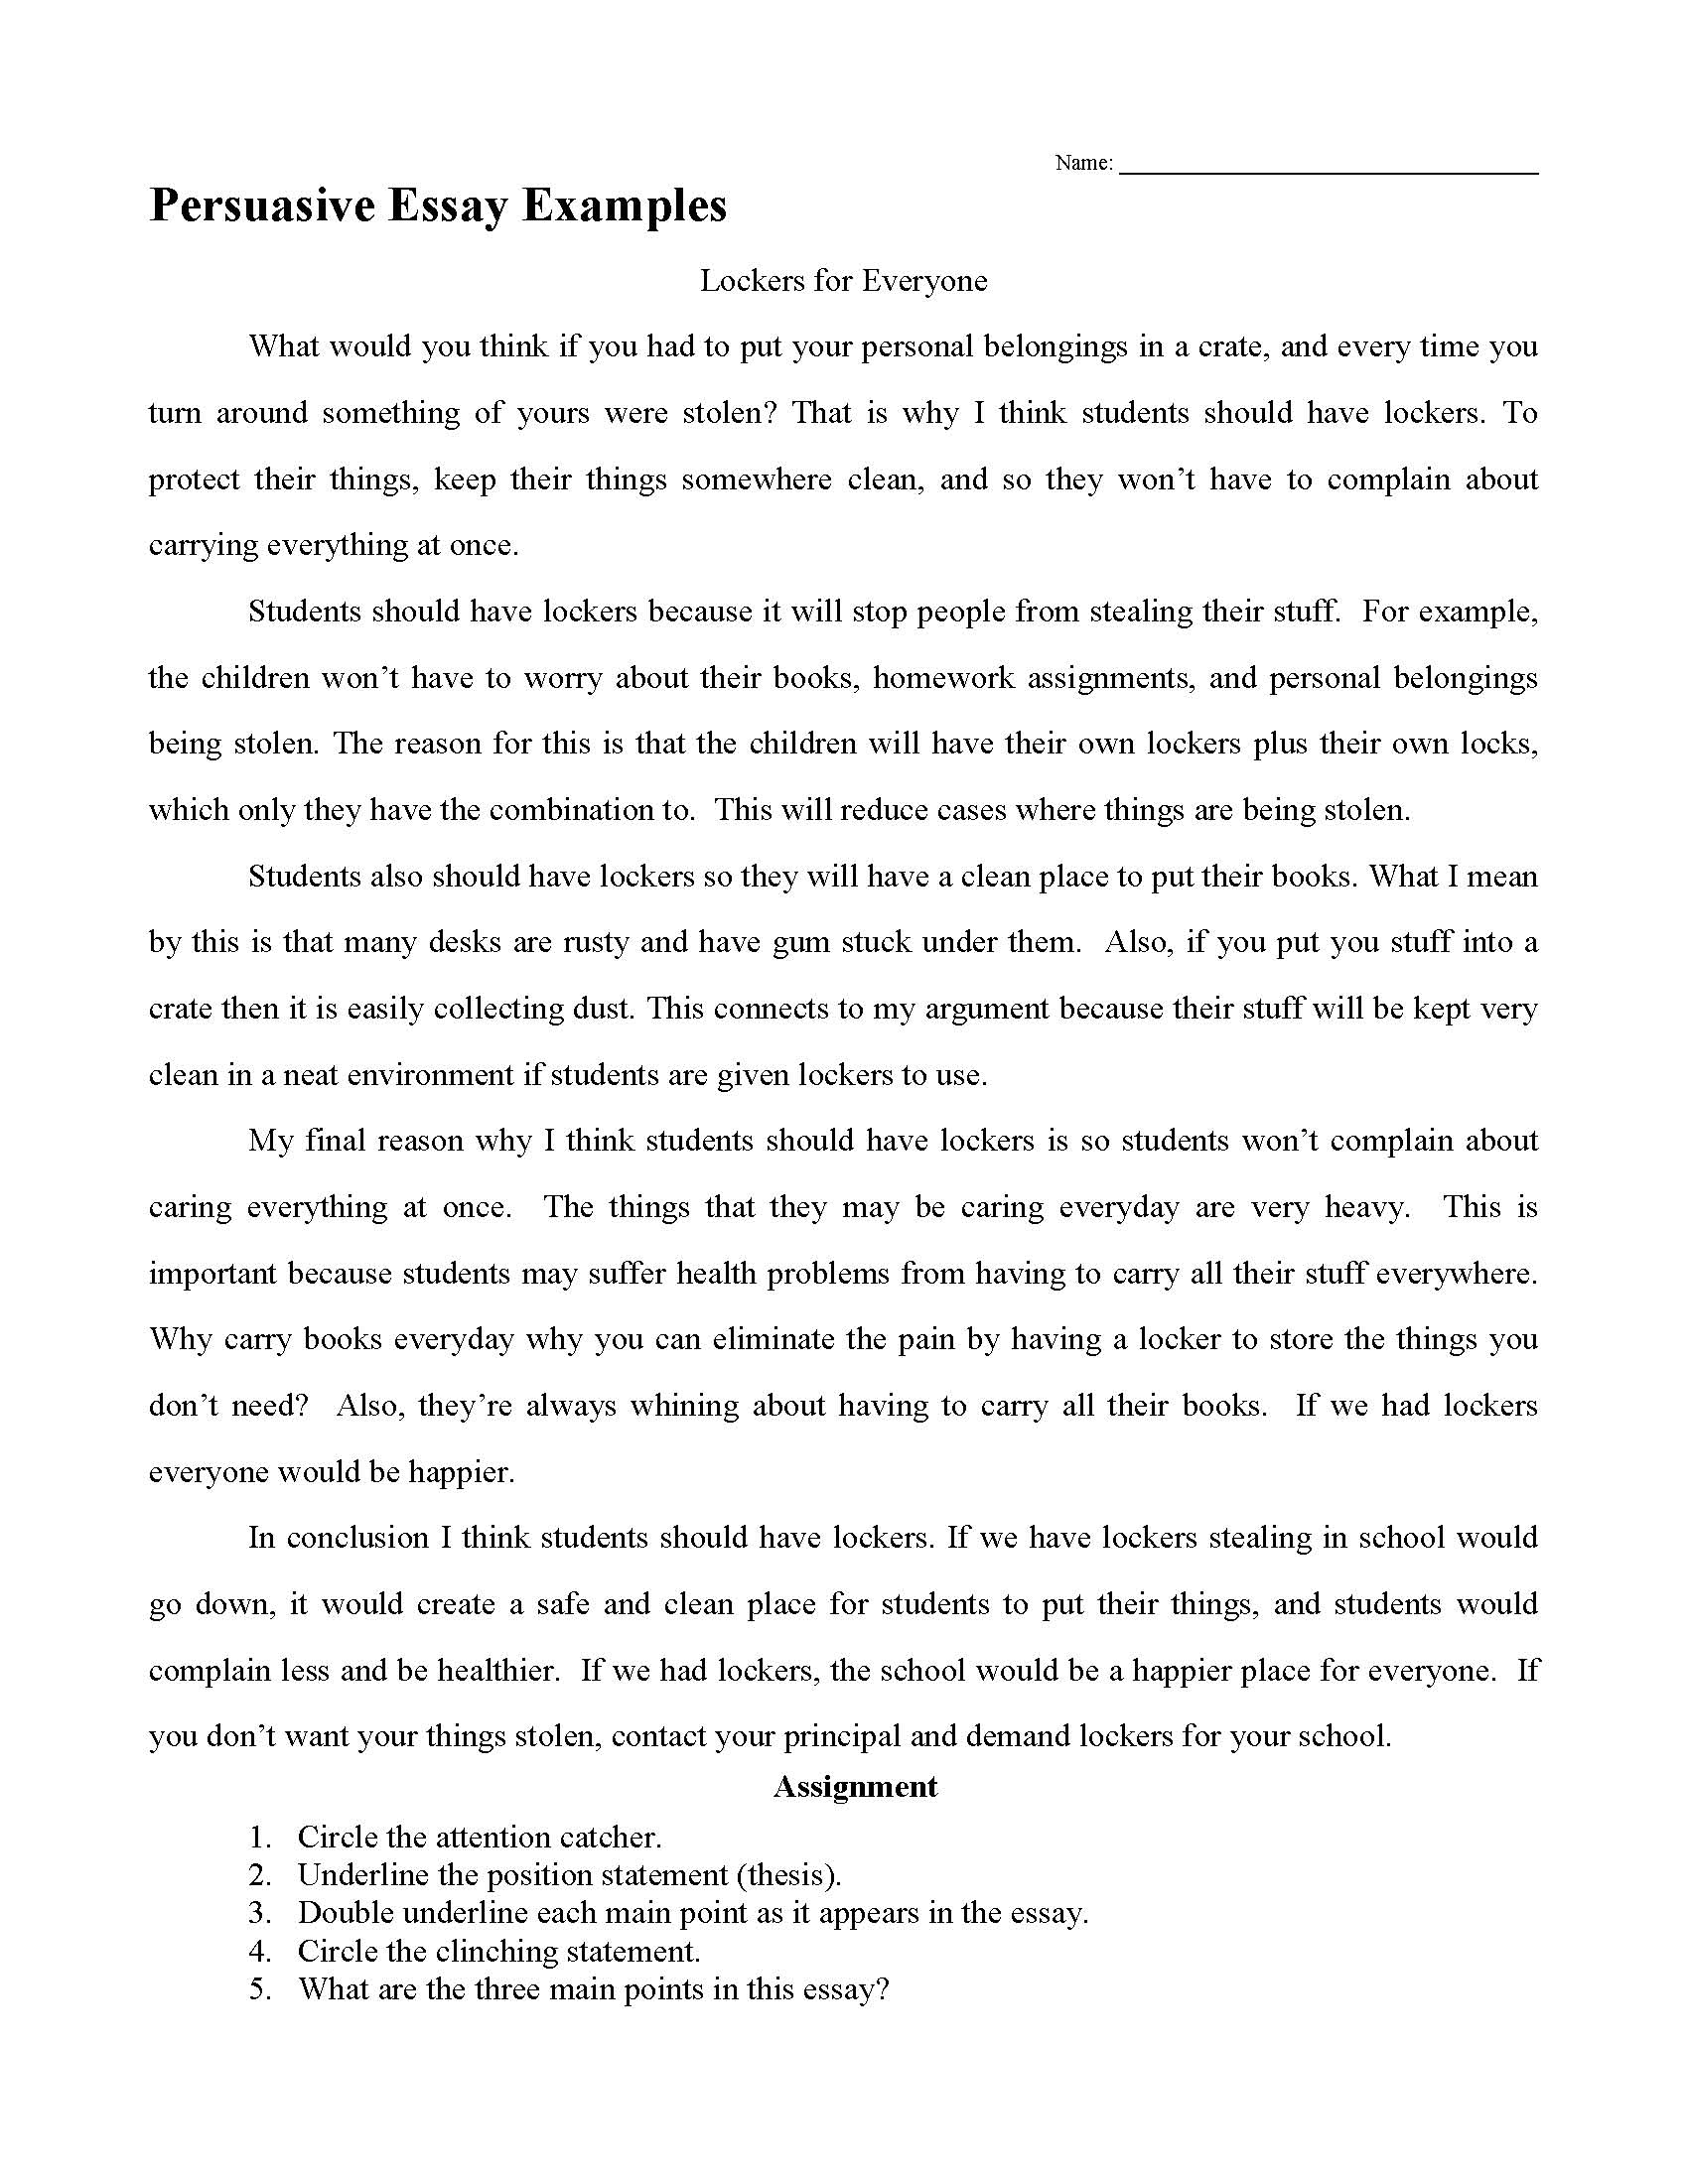 001 Persuasive Essay Examples Example Of Incredible A Argumentative Bullying About Anti Sample For 5th Grade Full